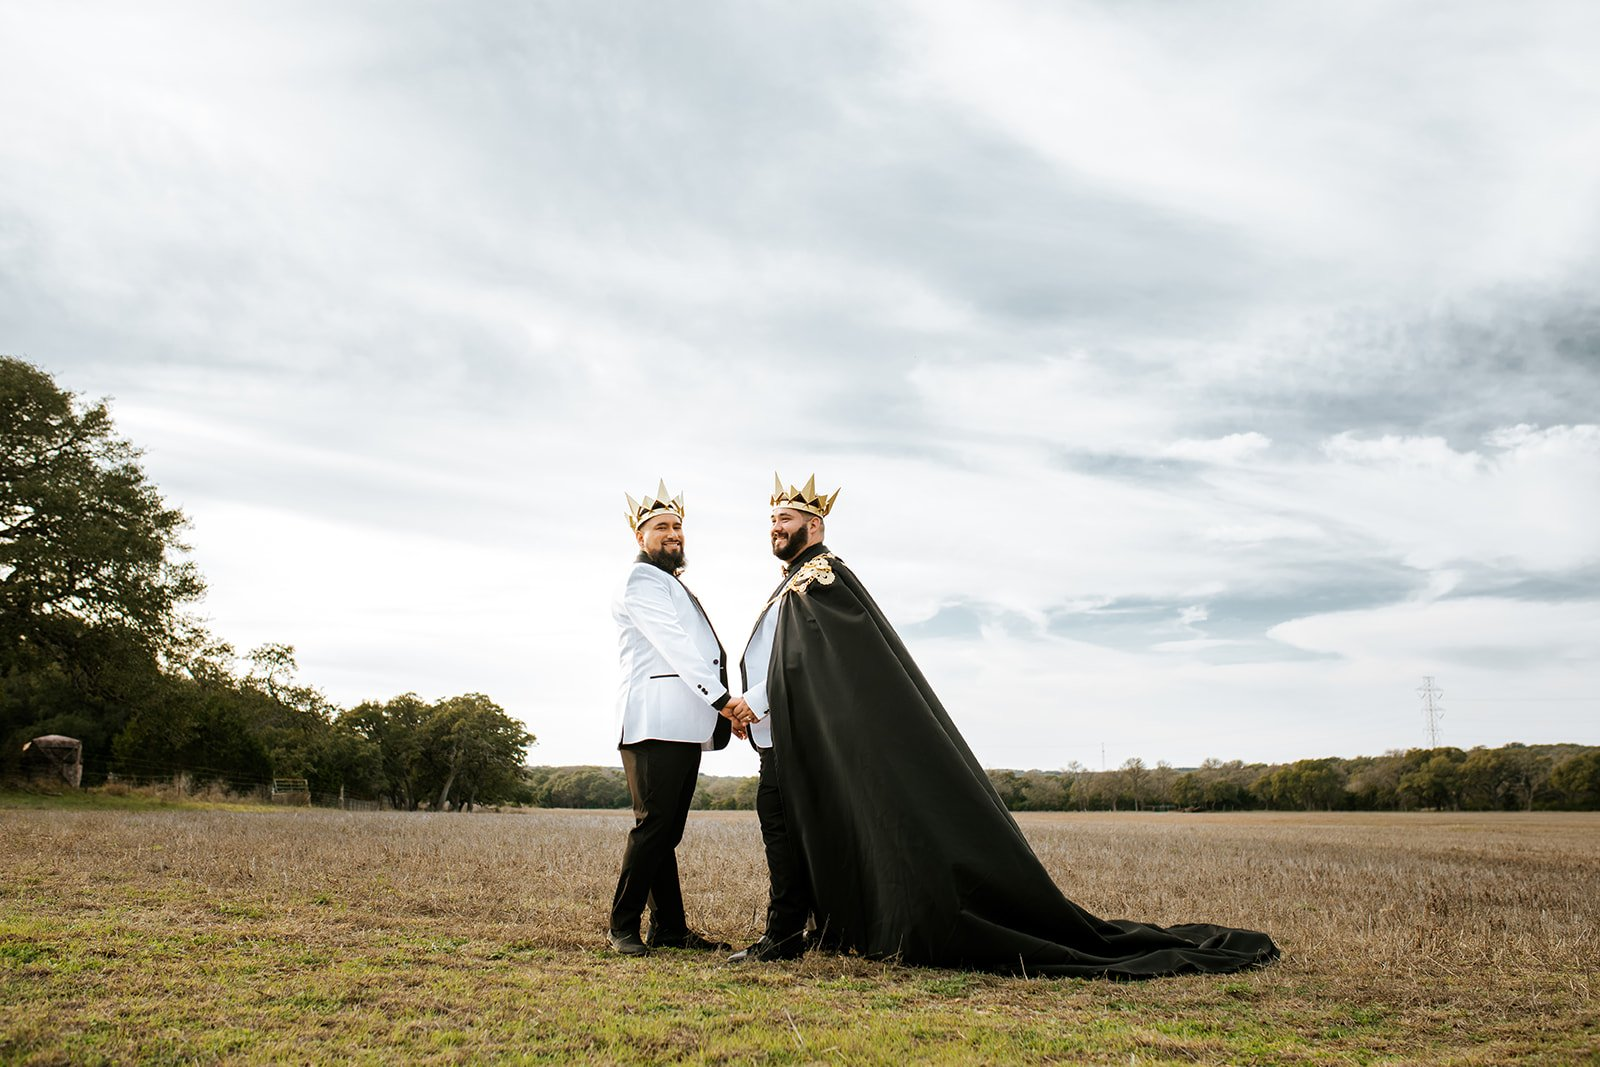 Preciliano &Tony - SanAntonioWeddings.com - BridalBuzz